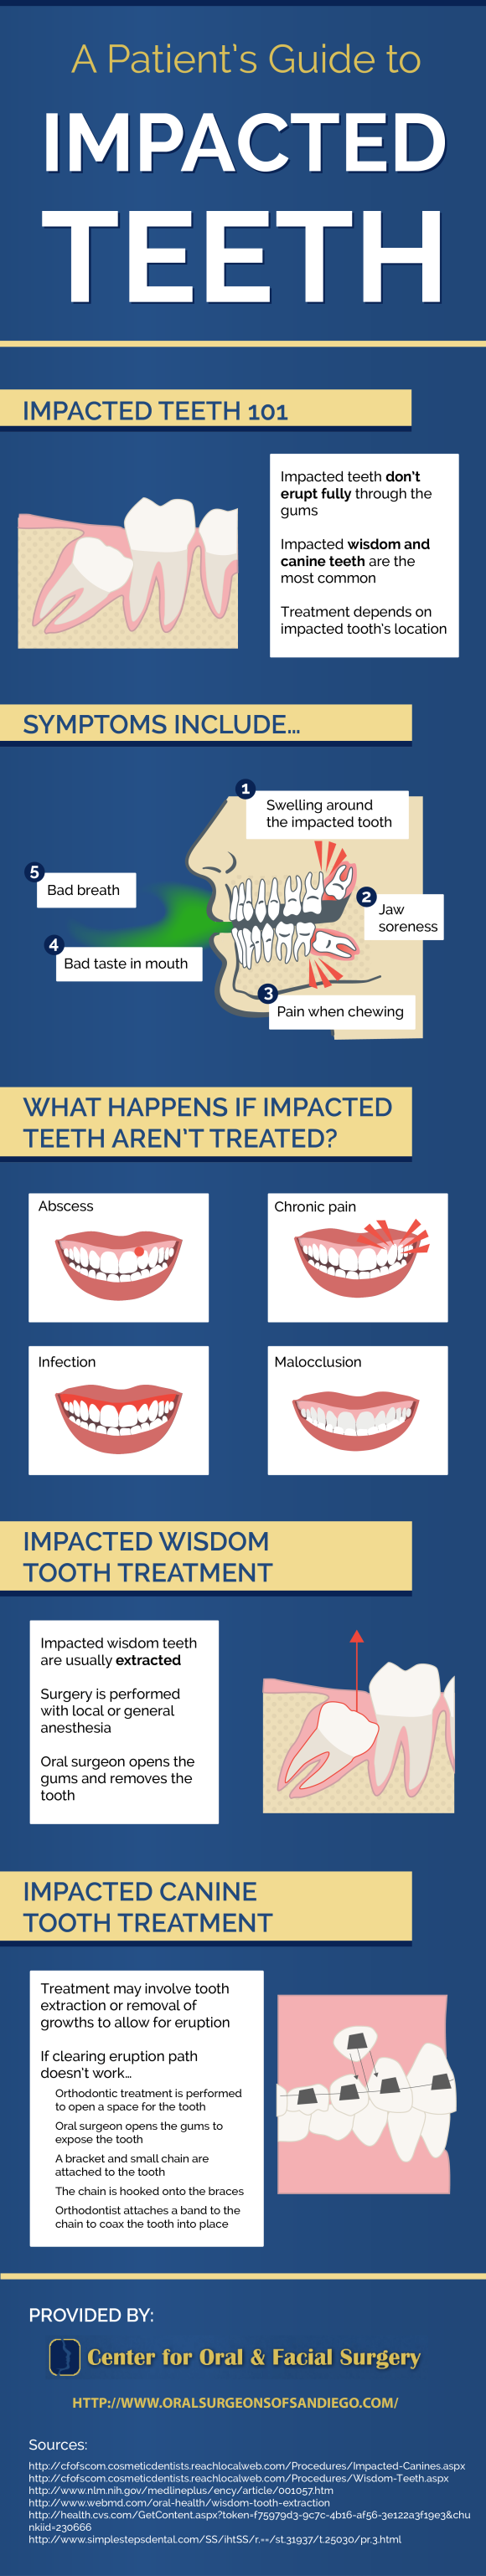 A patient's guide to impacted teeth San Diego